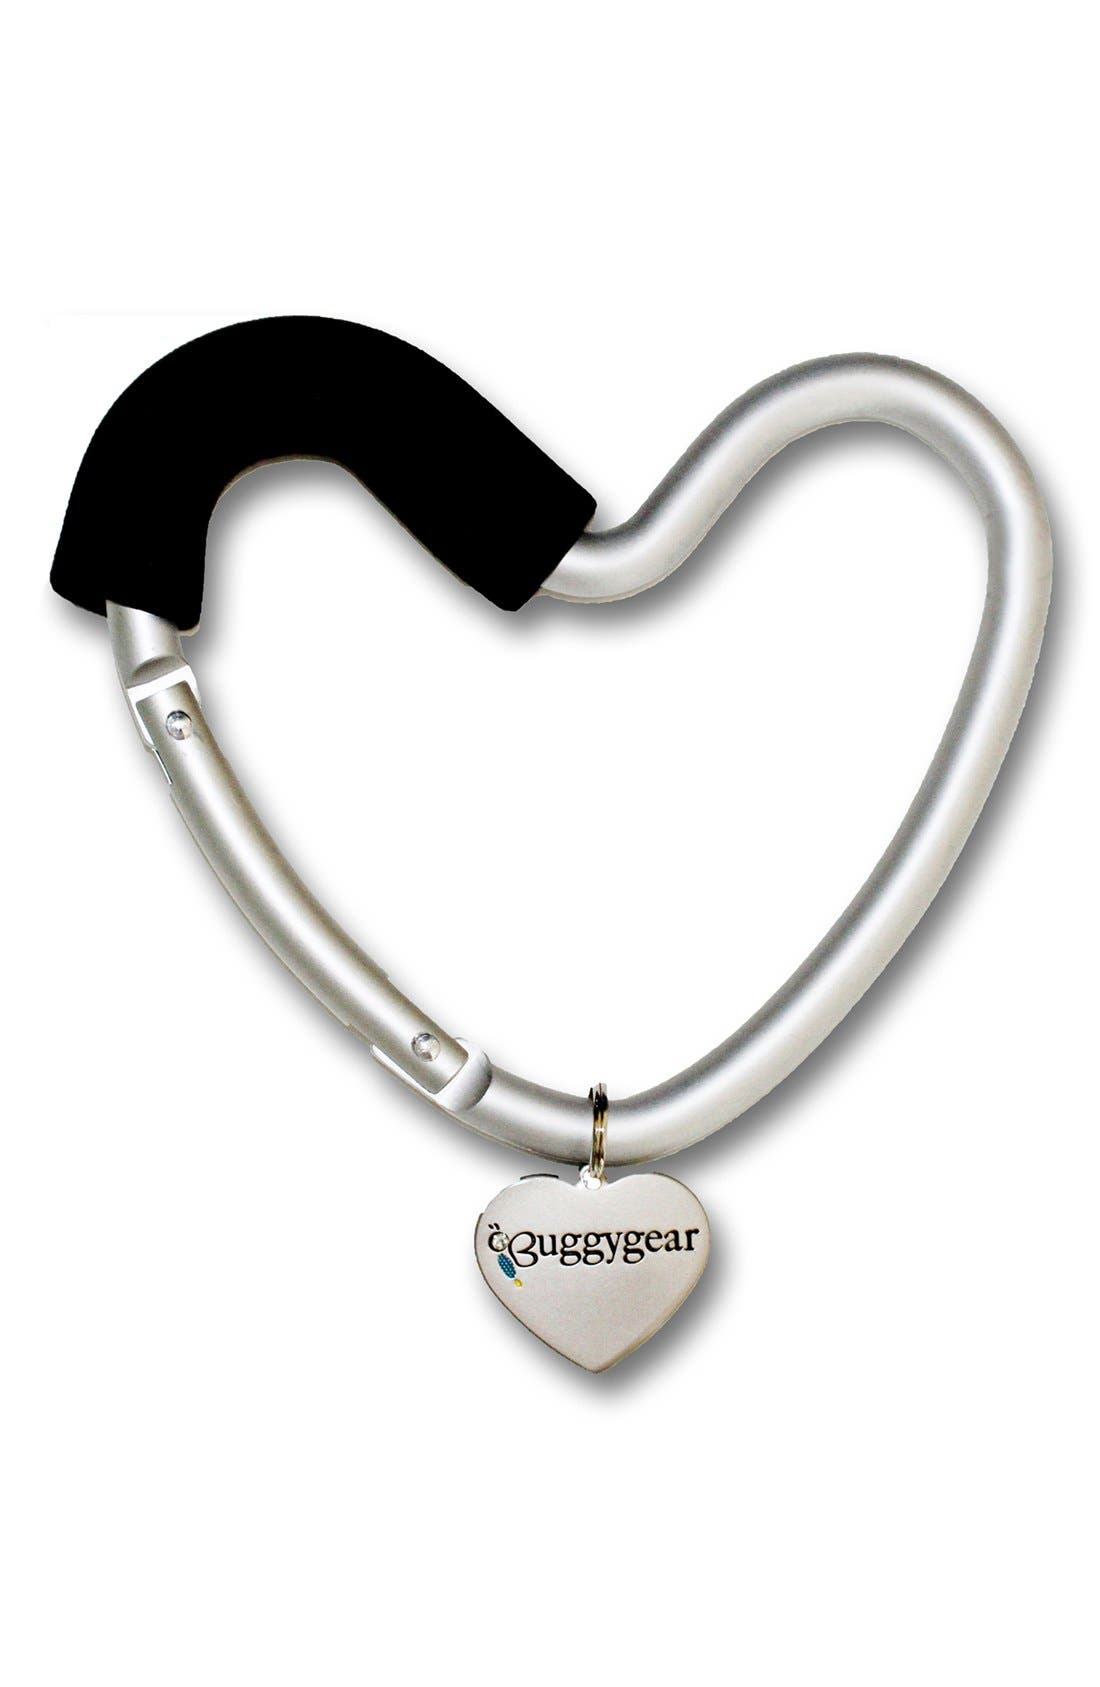 Buggygear 'Buggy Heart Hook' Stroller Bag Hanger,                             Alternate thumbnail 3, color,                             SILVER/ BLACK